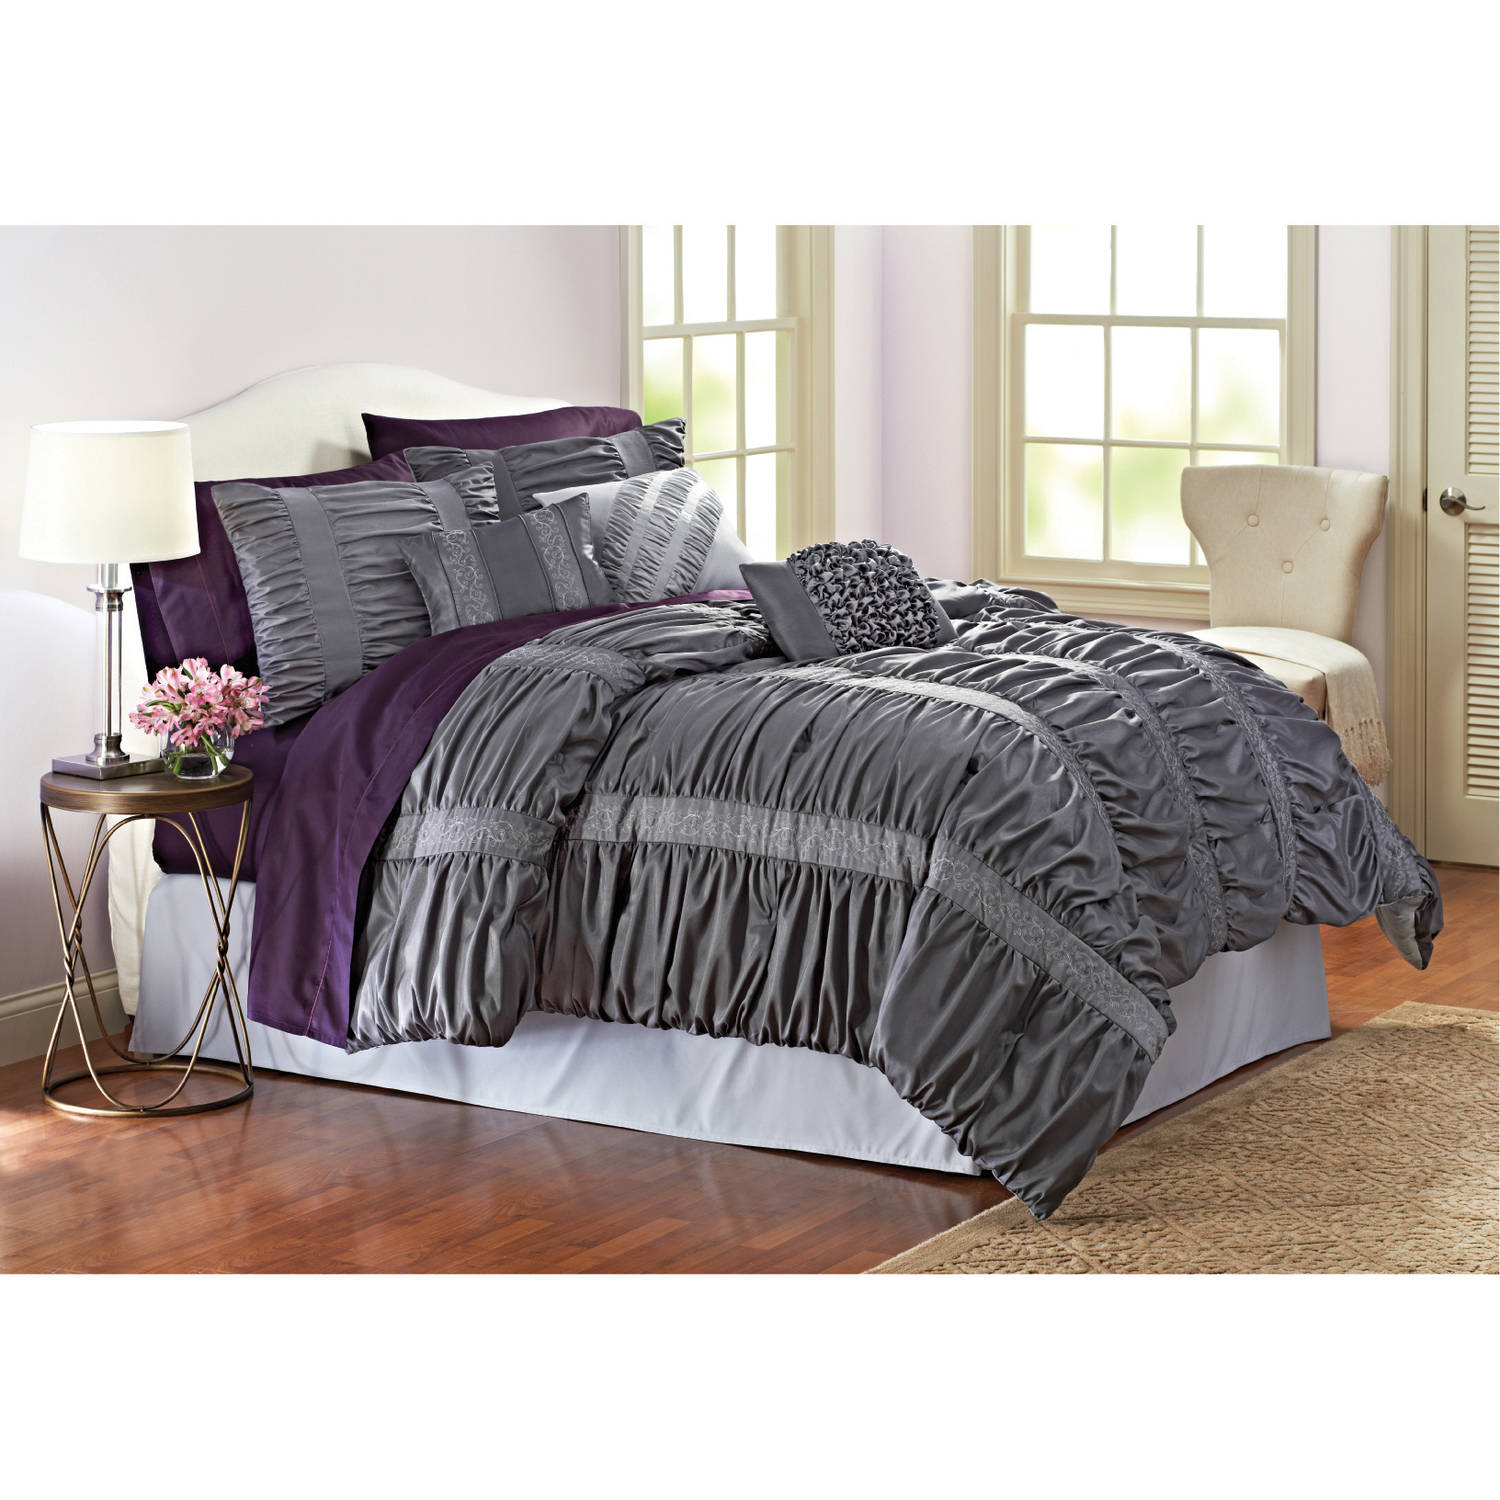 Better Homes & Gardens Full Embroidered Ruching Comforter Set, 7 Piece